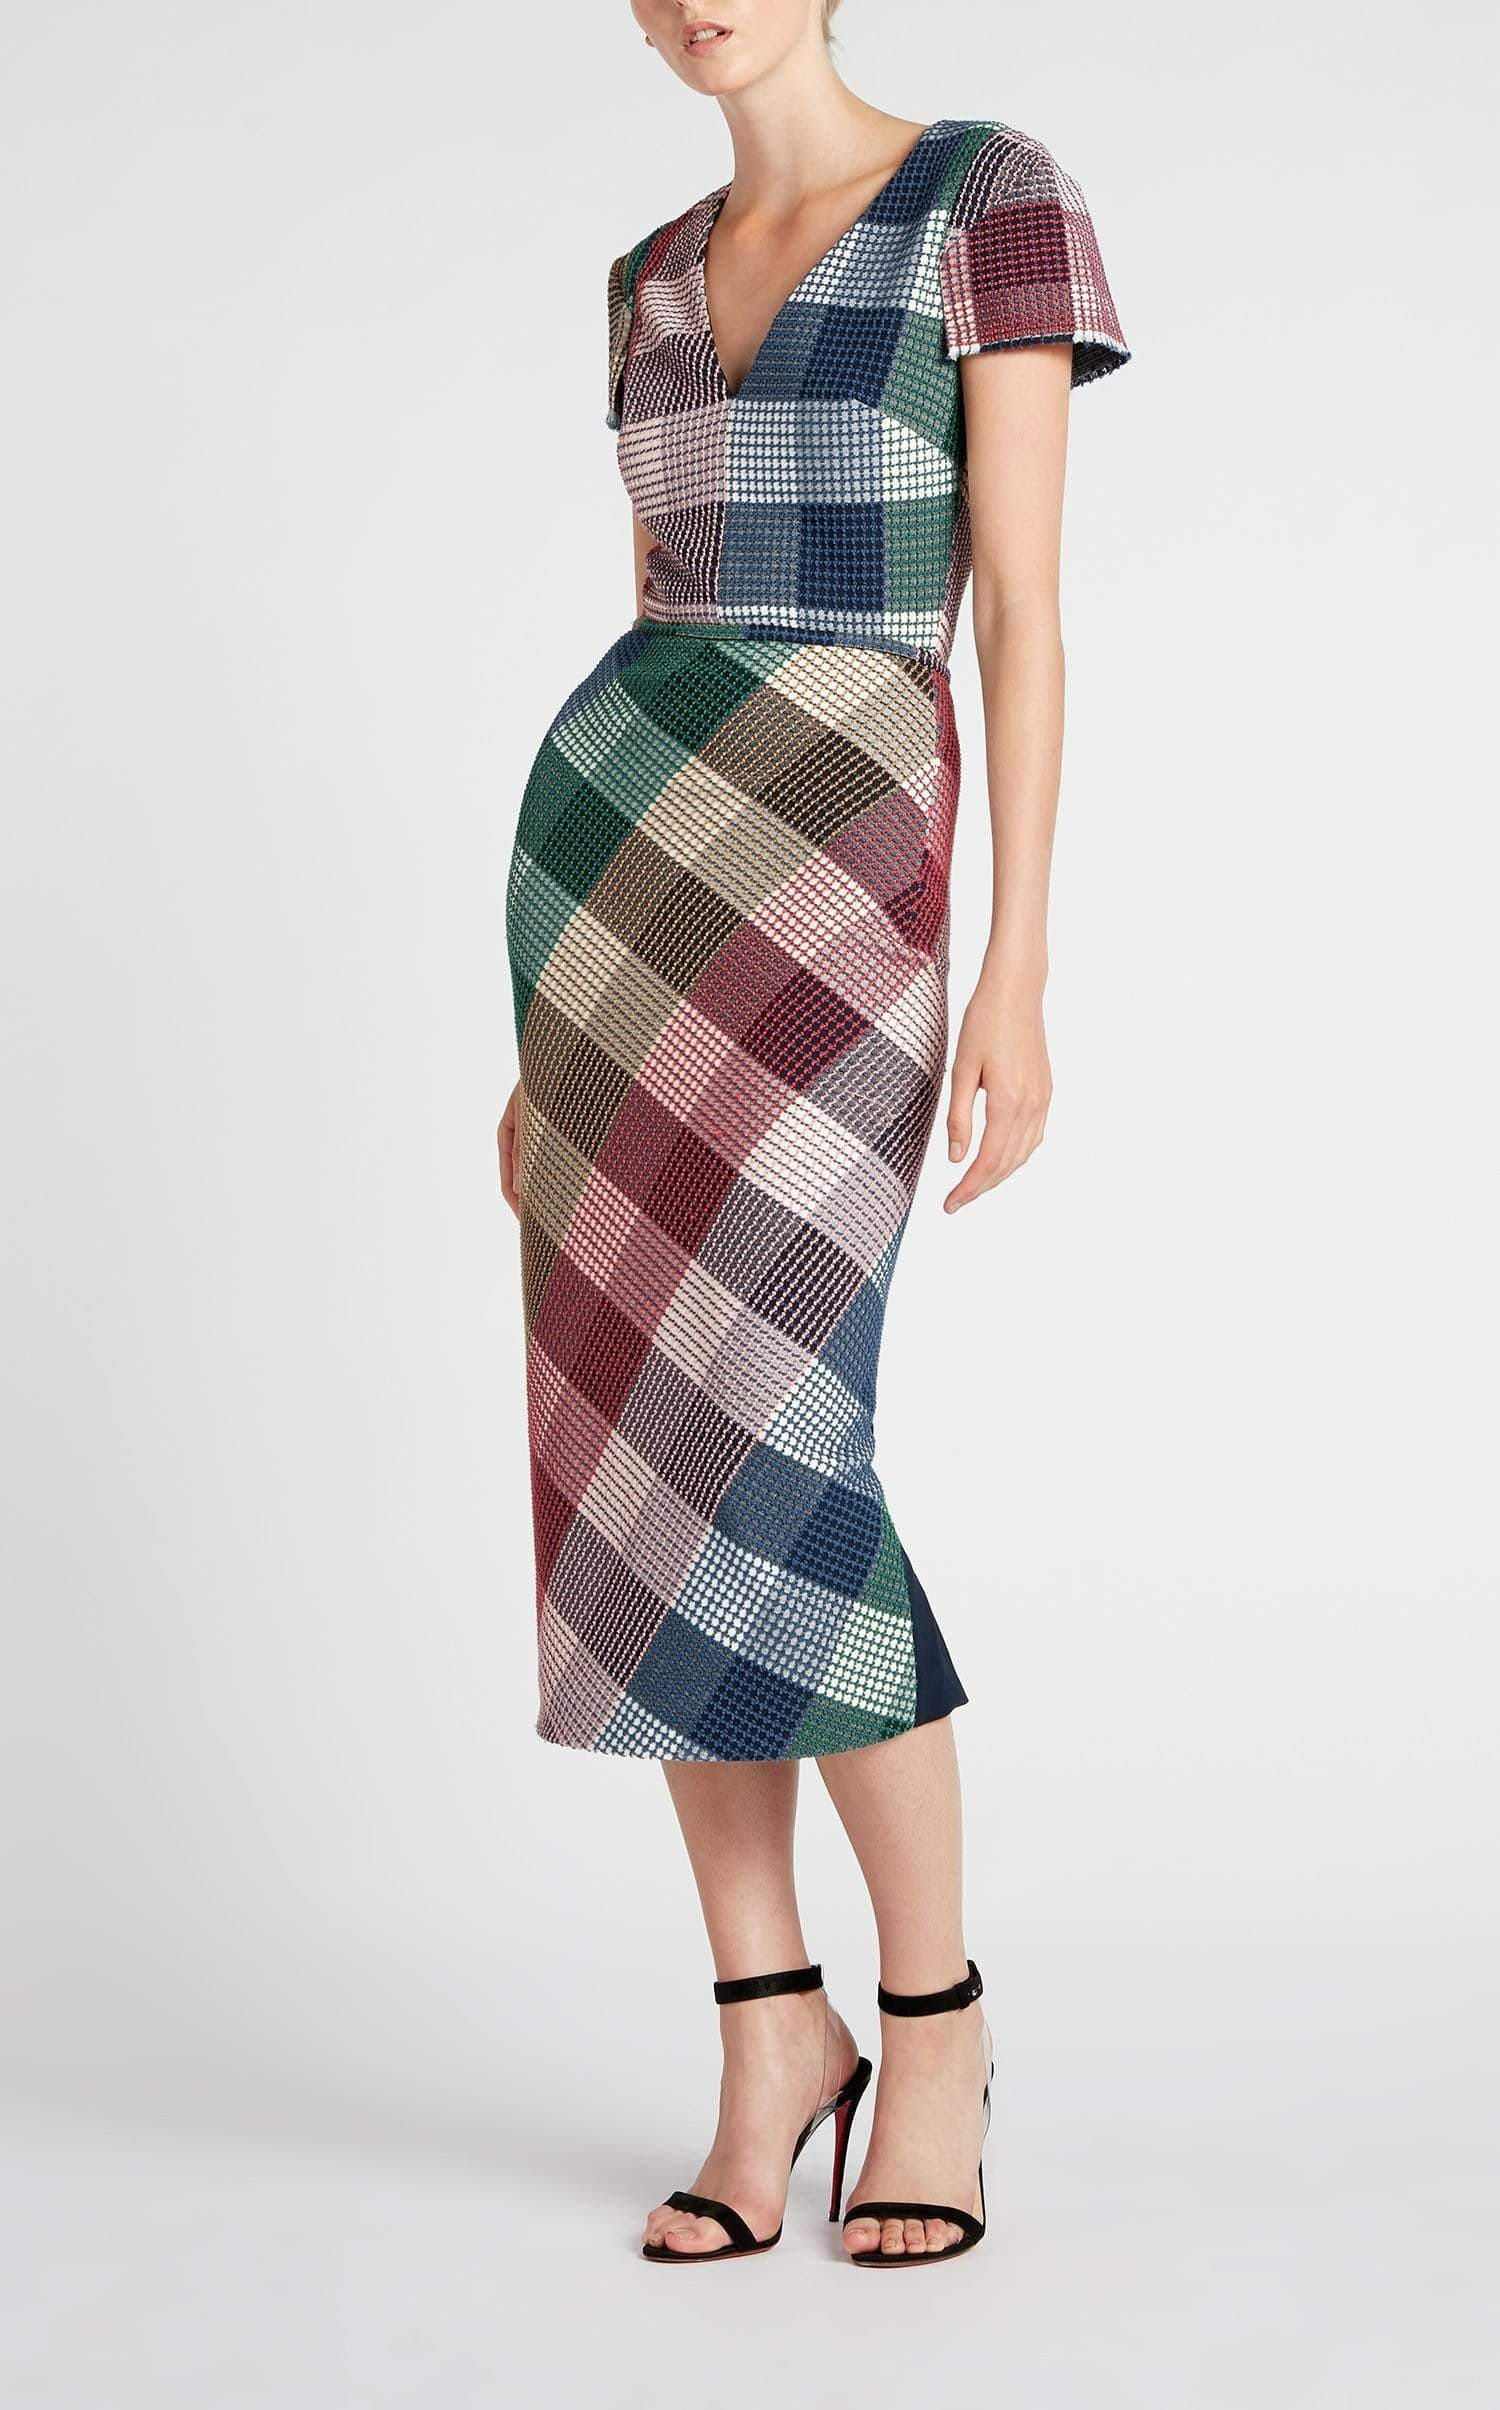 Chaney Dress In Multi from Roland Mouret